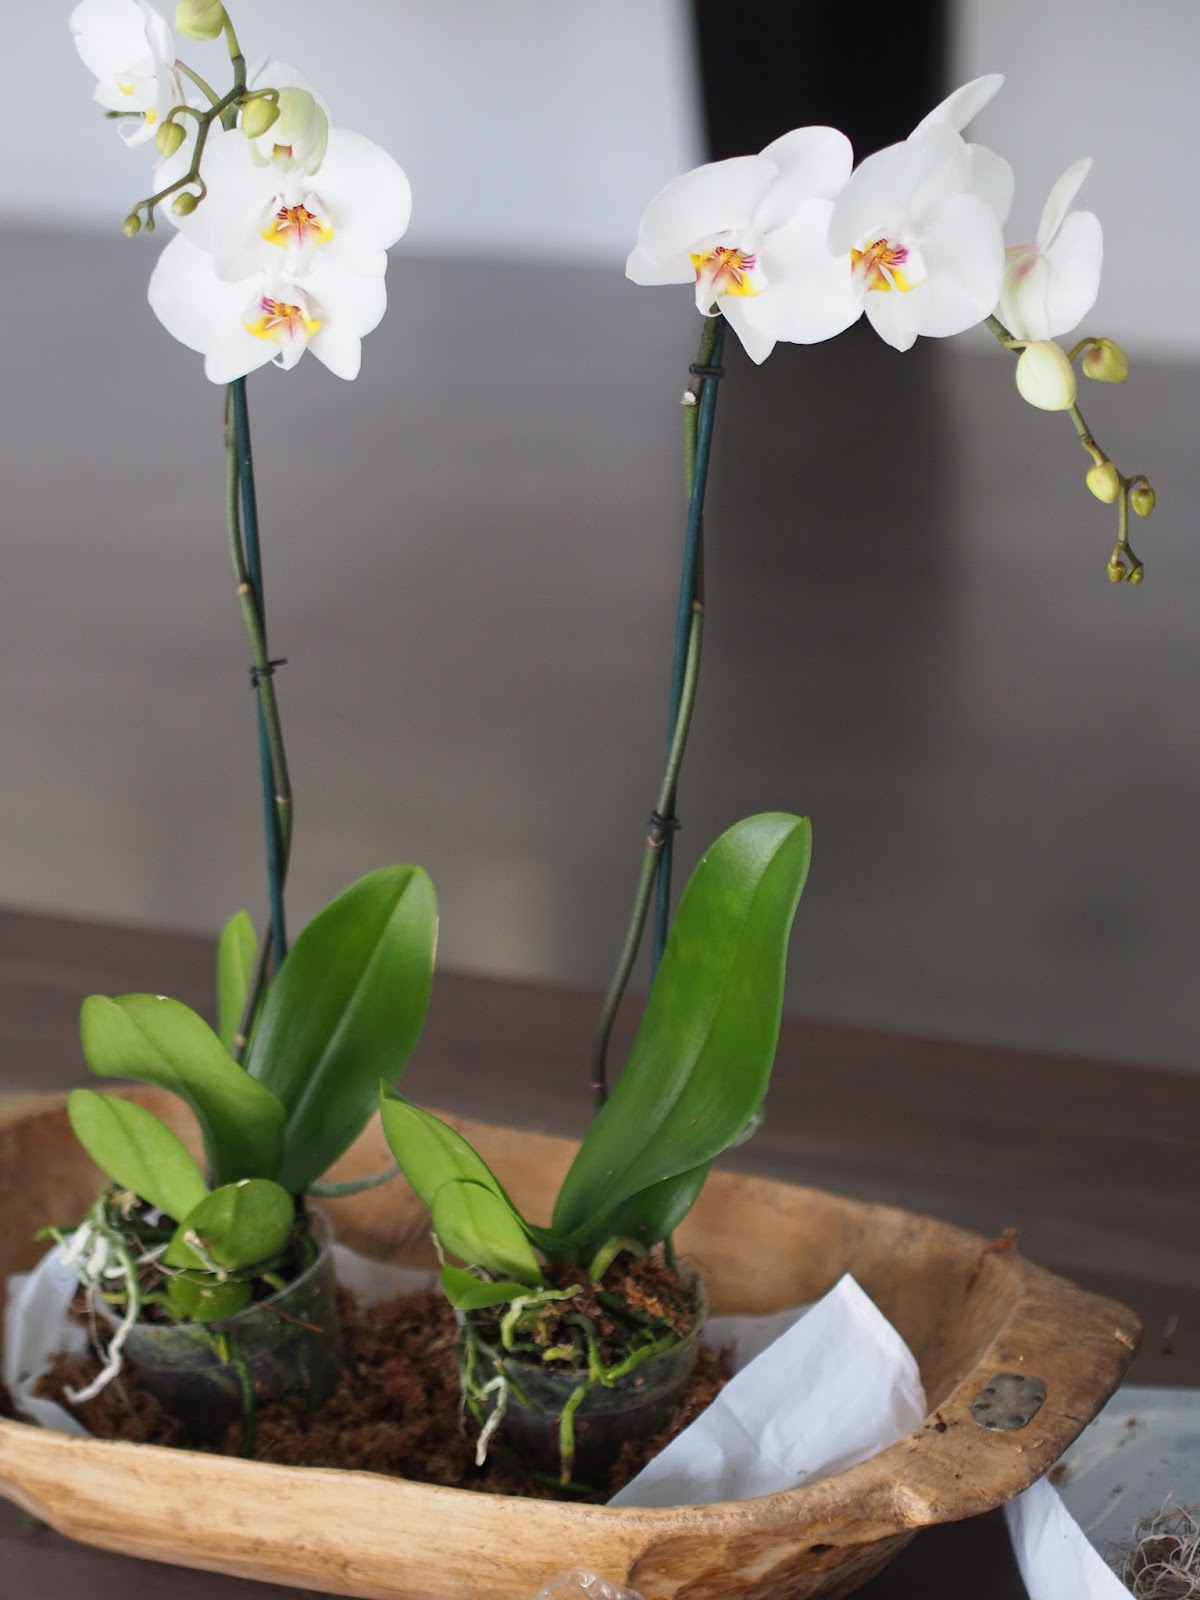 Typical domestic babe how to potted orchids displayed in a dough bowl - How to care for potted orchids ...